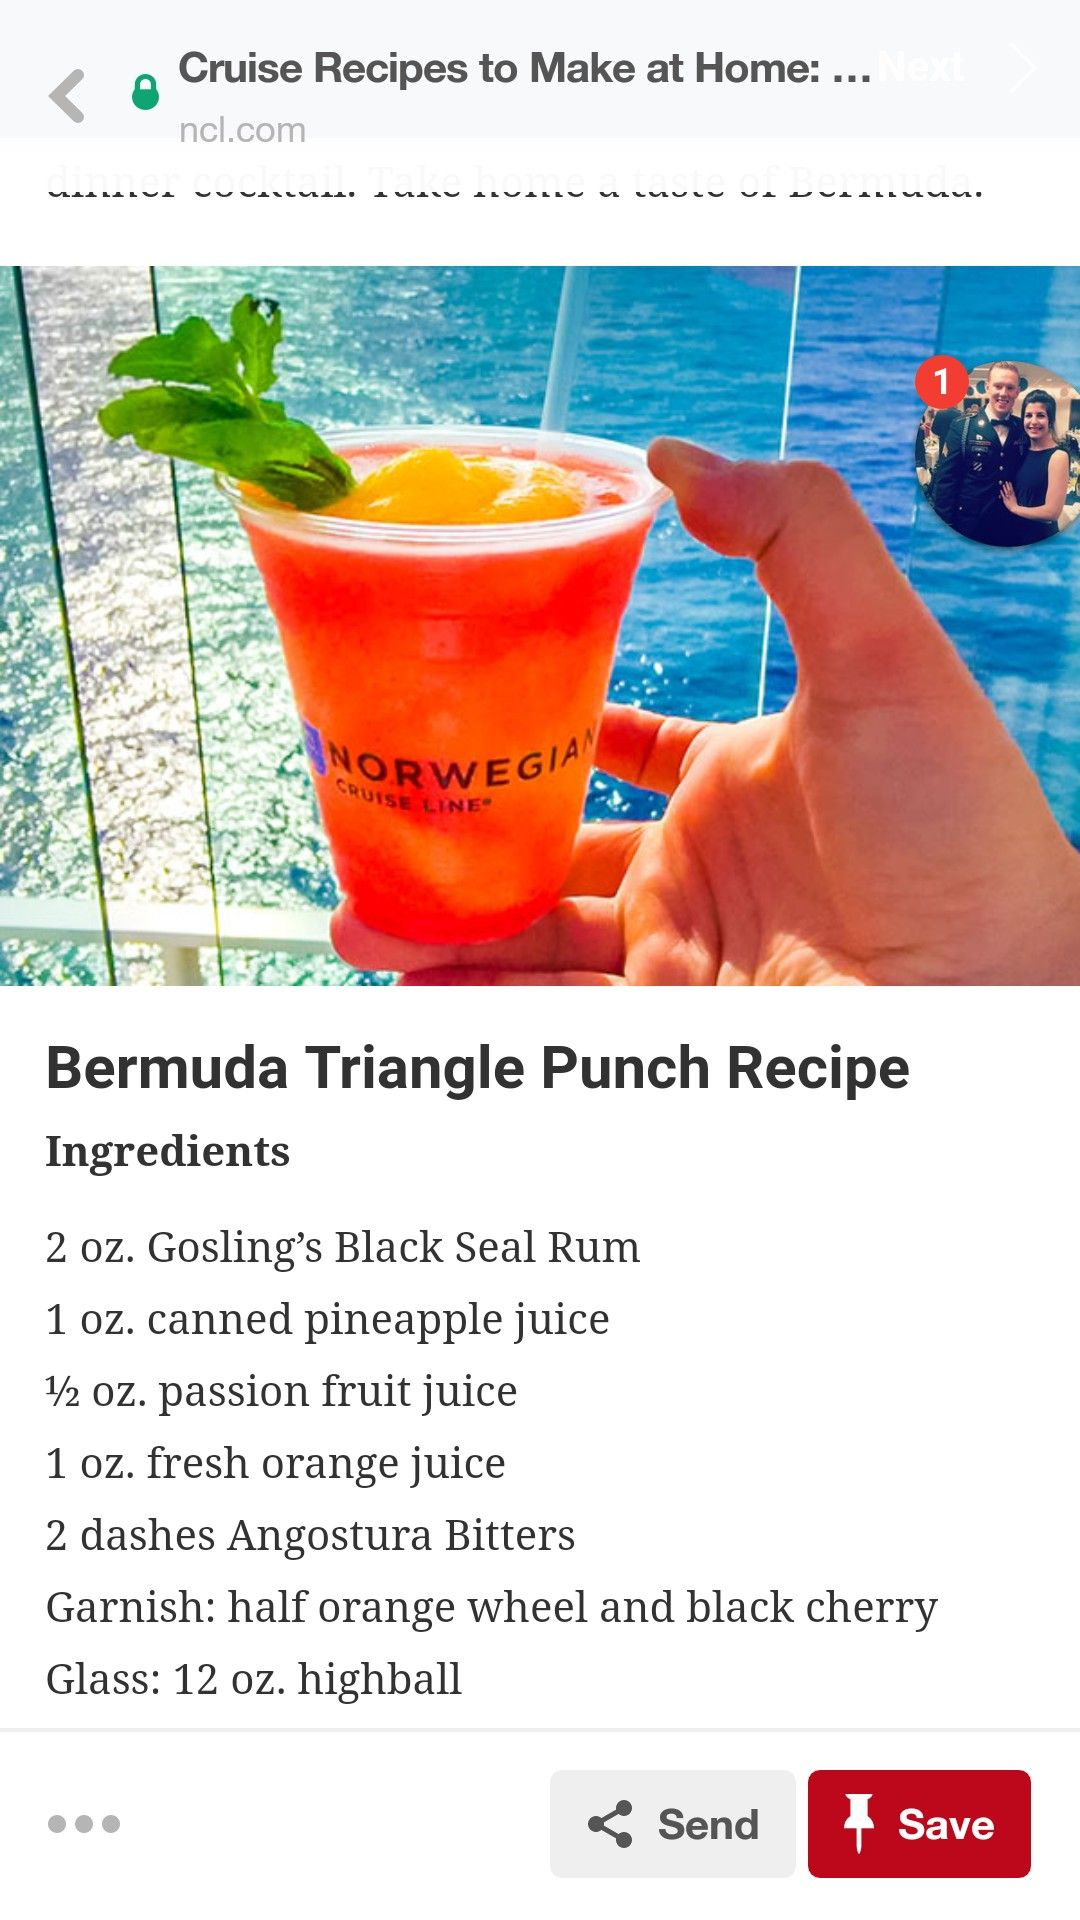 Bermuda Triangle Punch Tropical Summer Drink Recipe Tropical Drink Recipes Summer Drink Recipes Punch Recipes